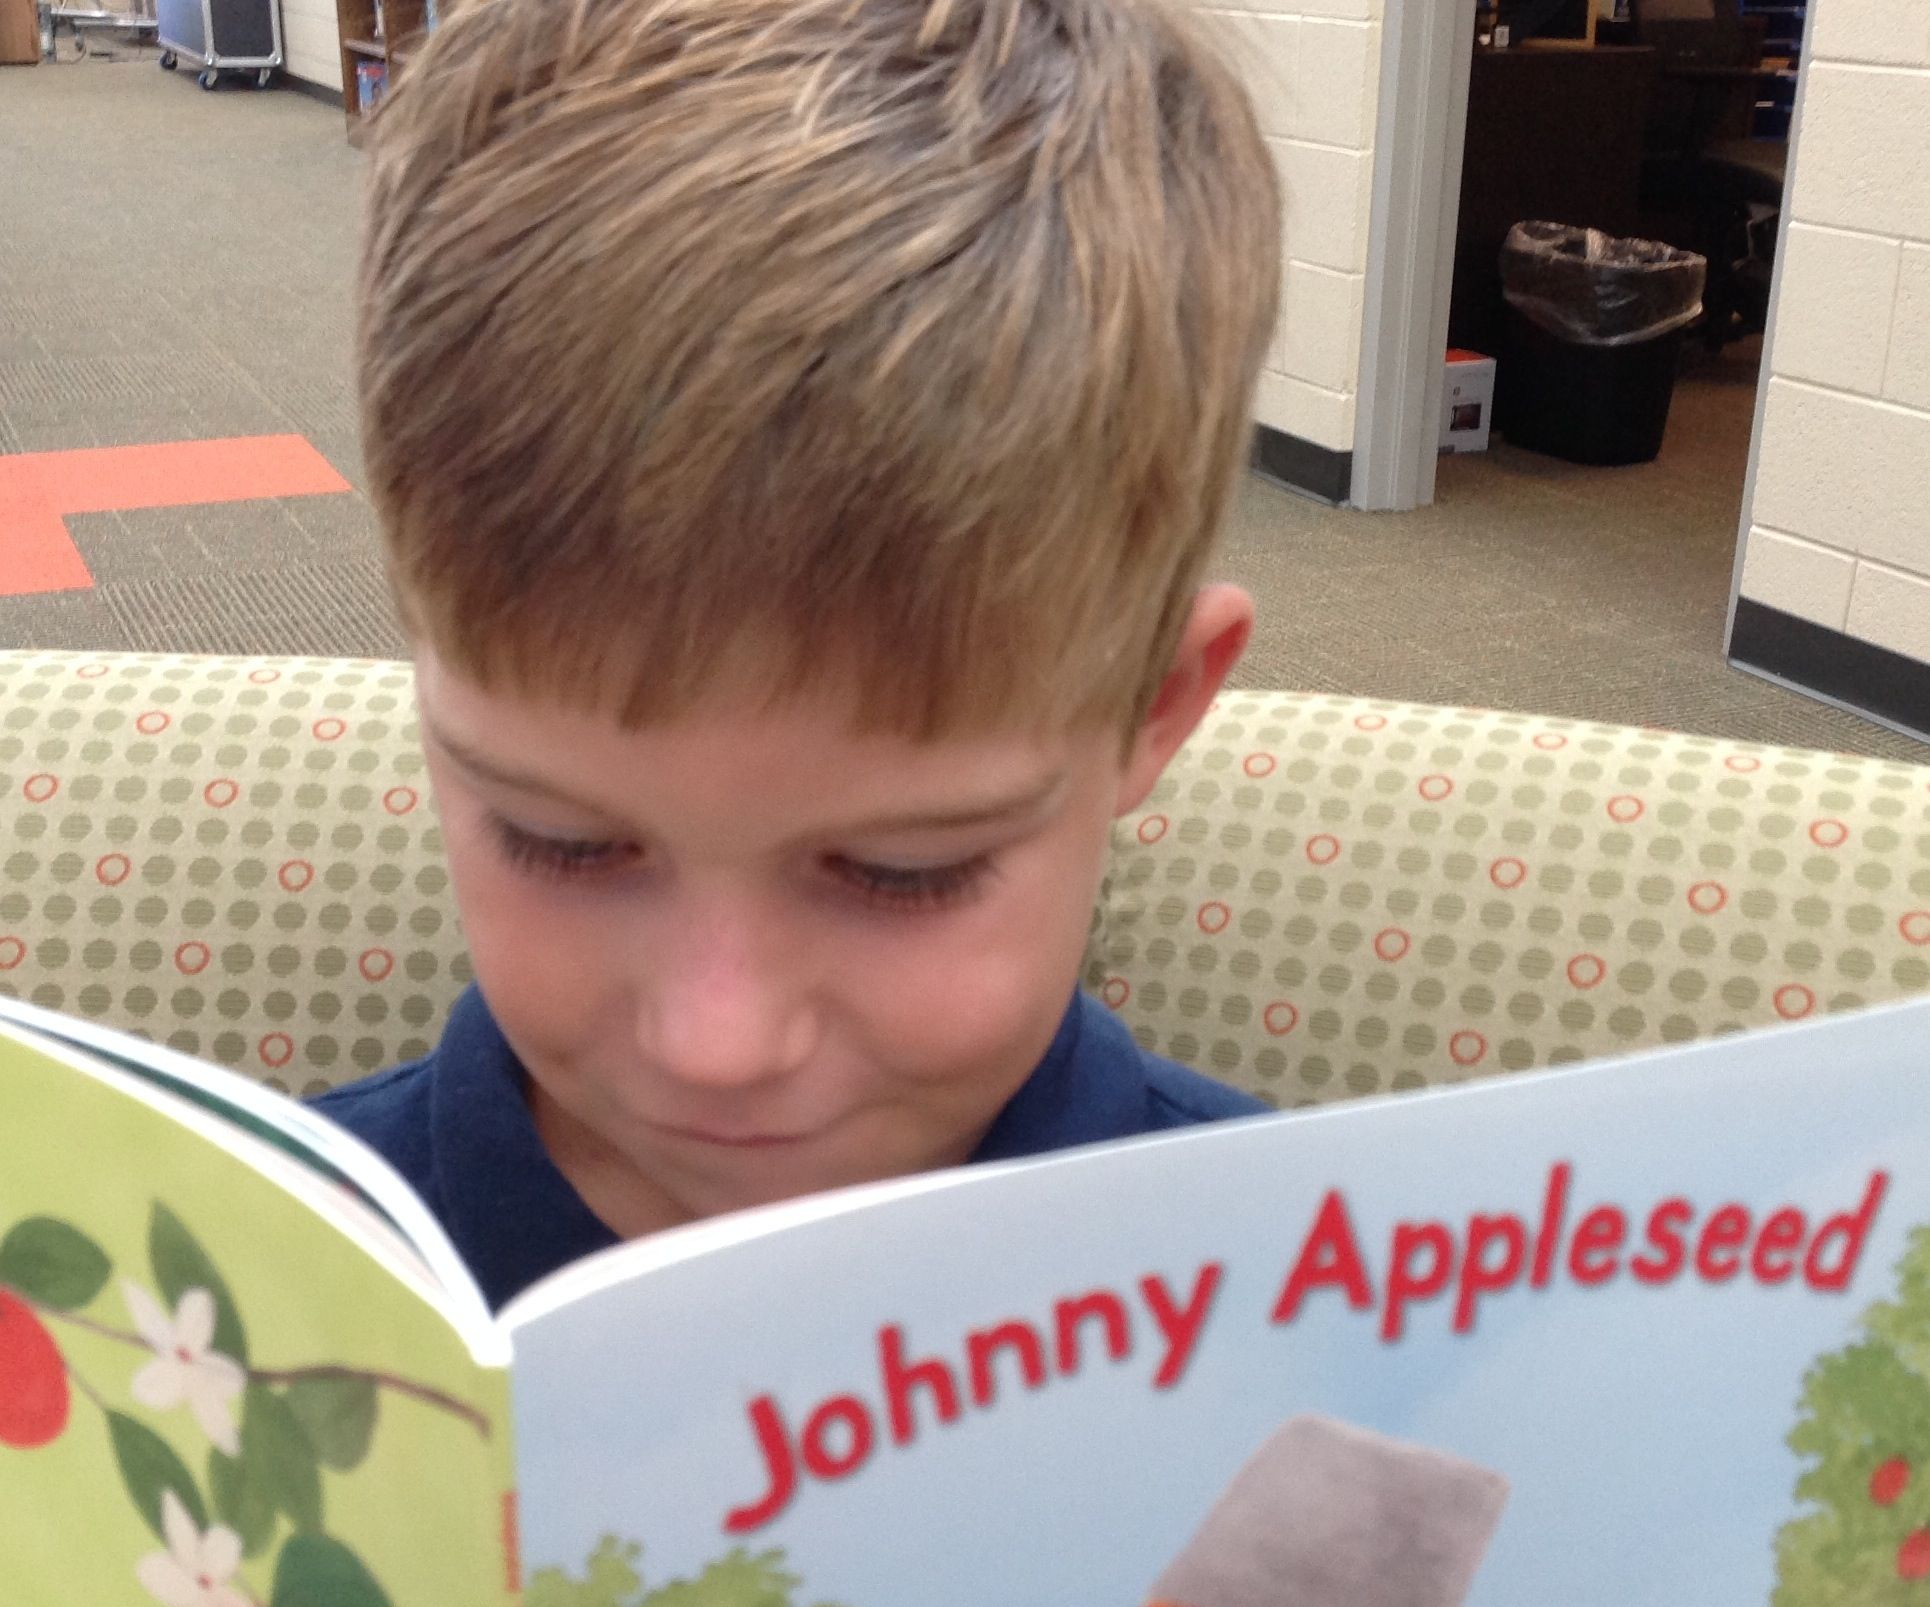 Johnny Appleseed Facts About Johnny Appleseed That May Be